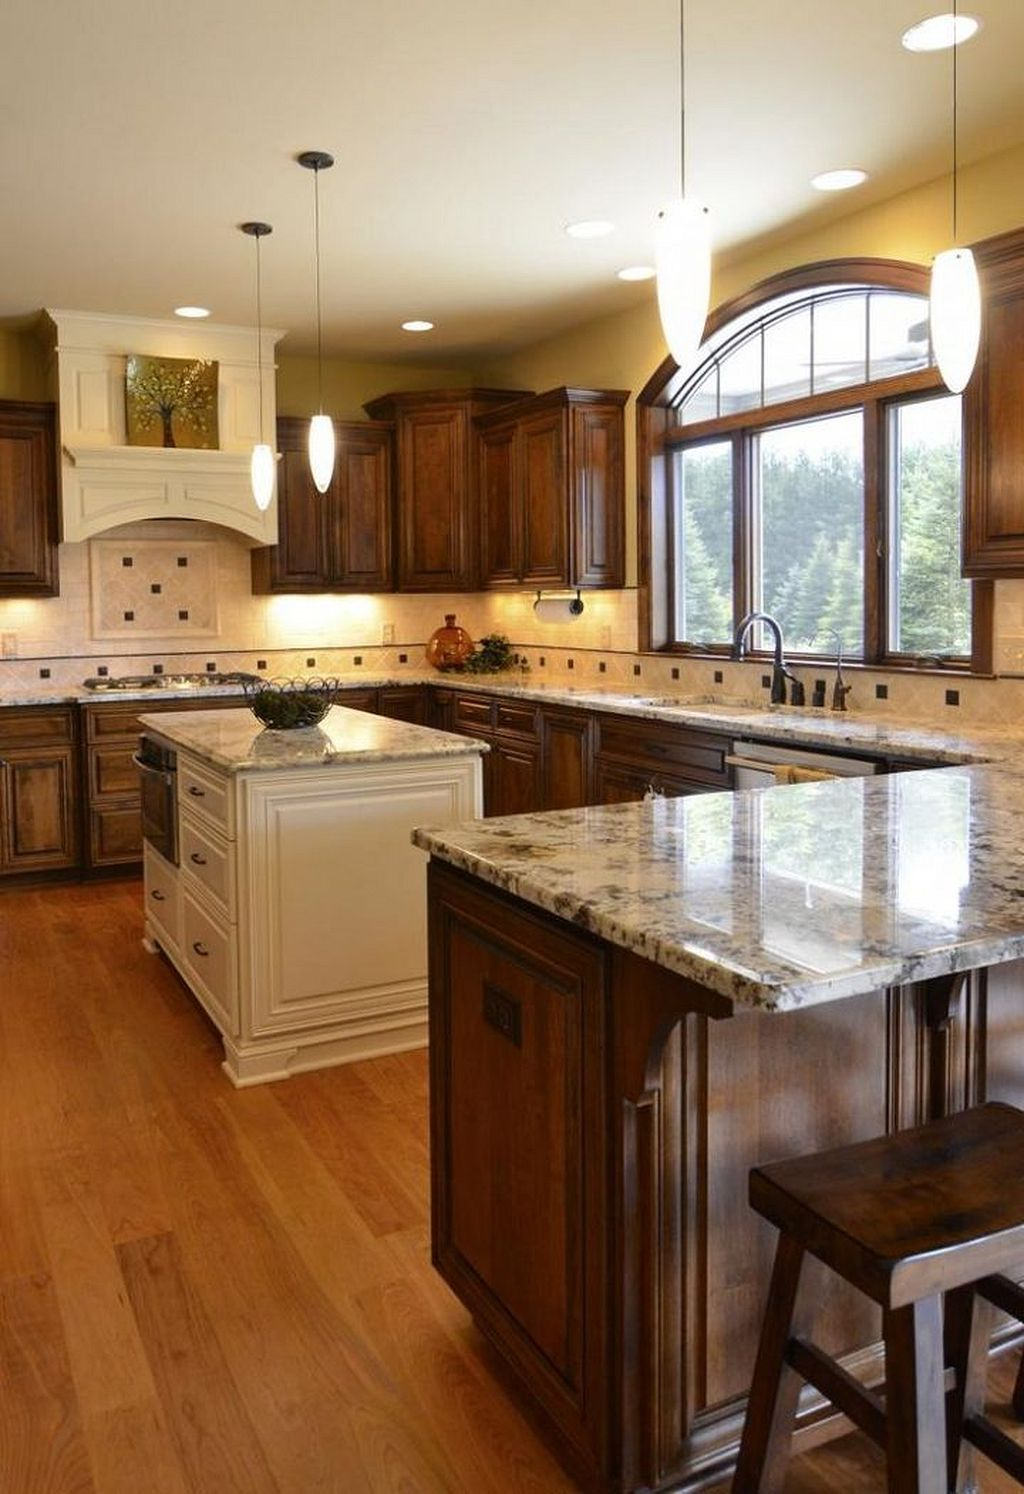 30 Awesome Ushaped Kitchen Designs For Small Spaces  Kitchen Magnificent Kitchen Design Small Spaces Review